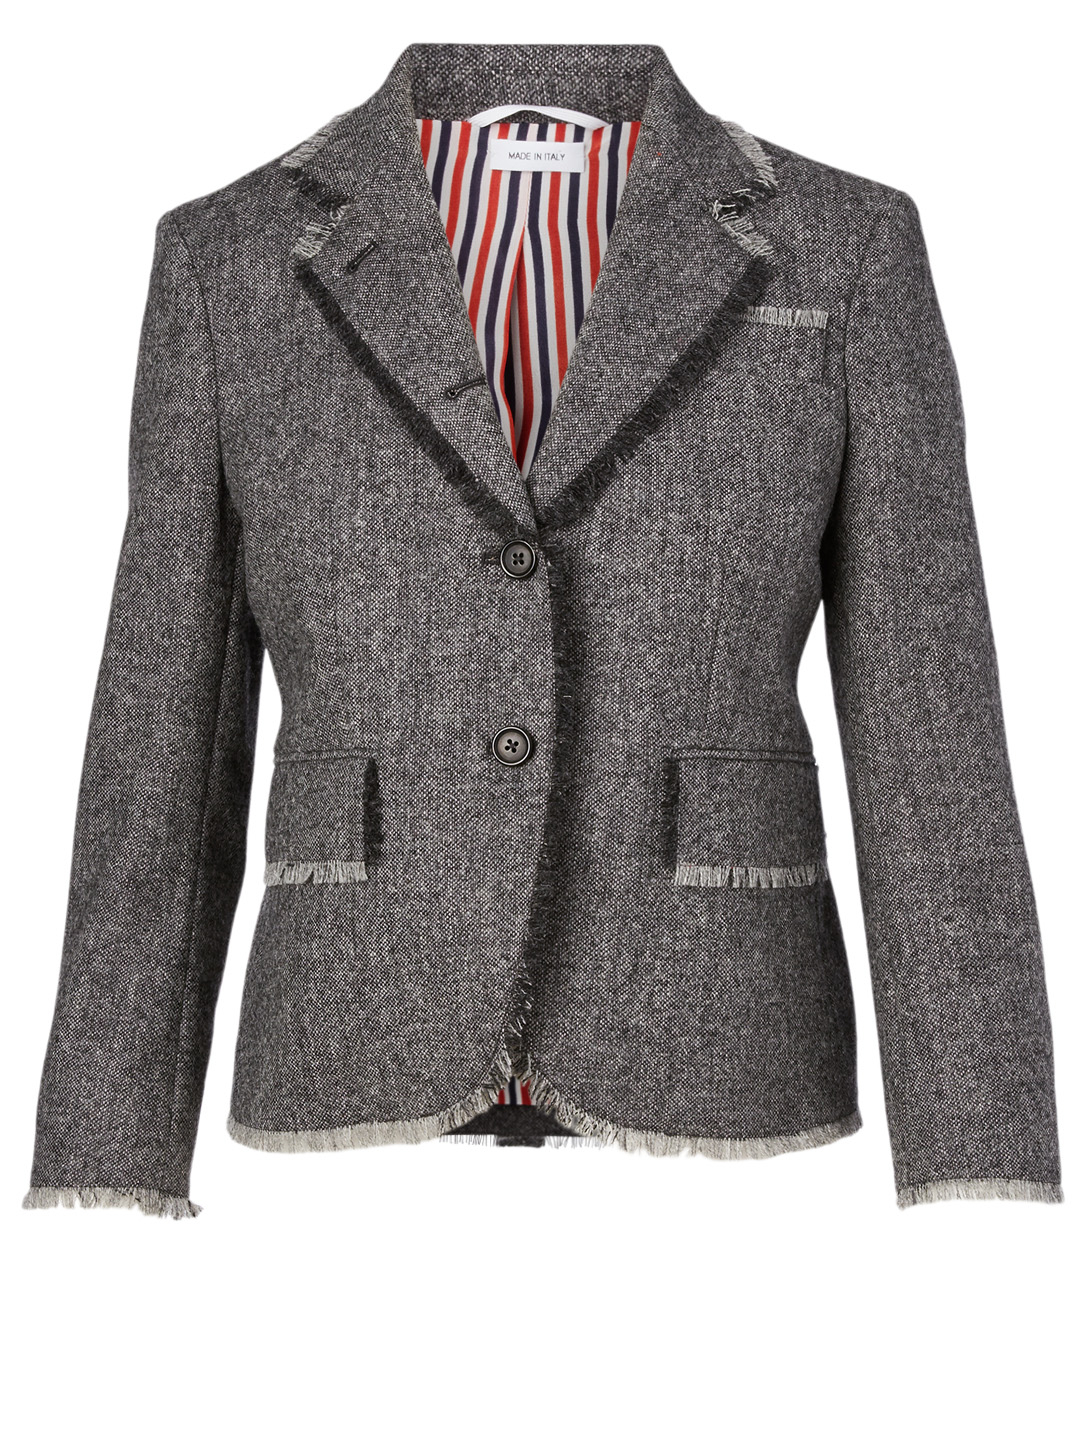 THOM BROWNE Cotton Tweed Blazer With Frayed Detail Women's Grey